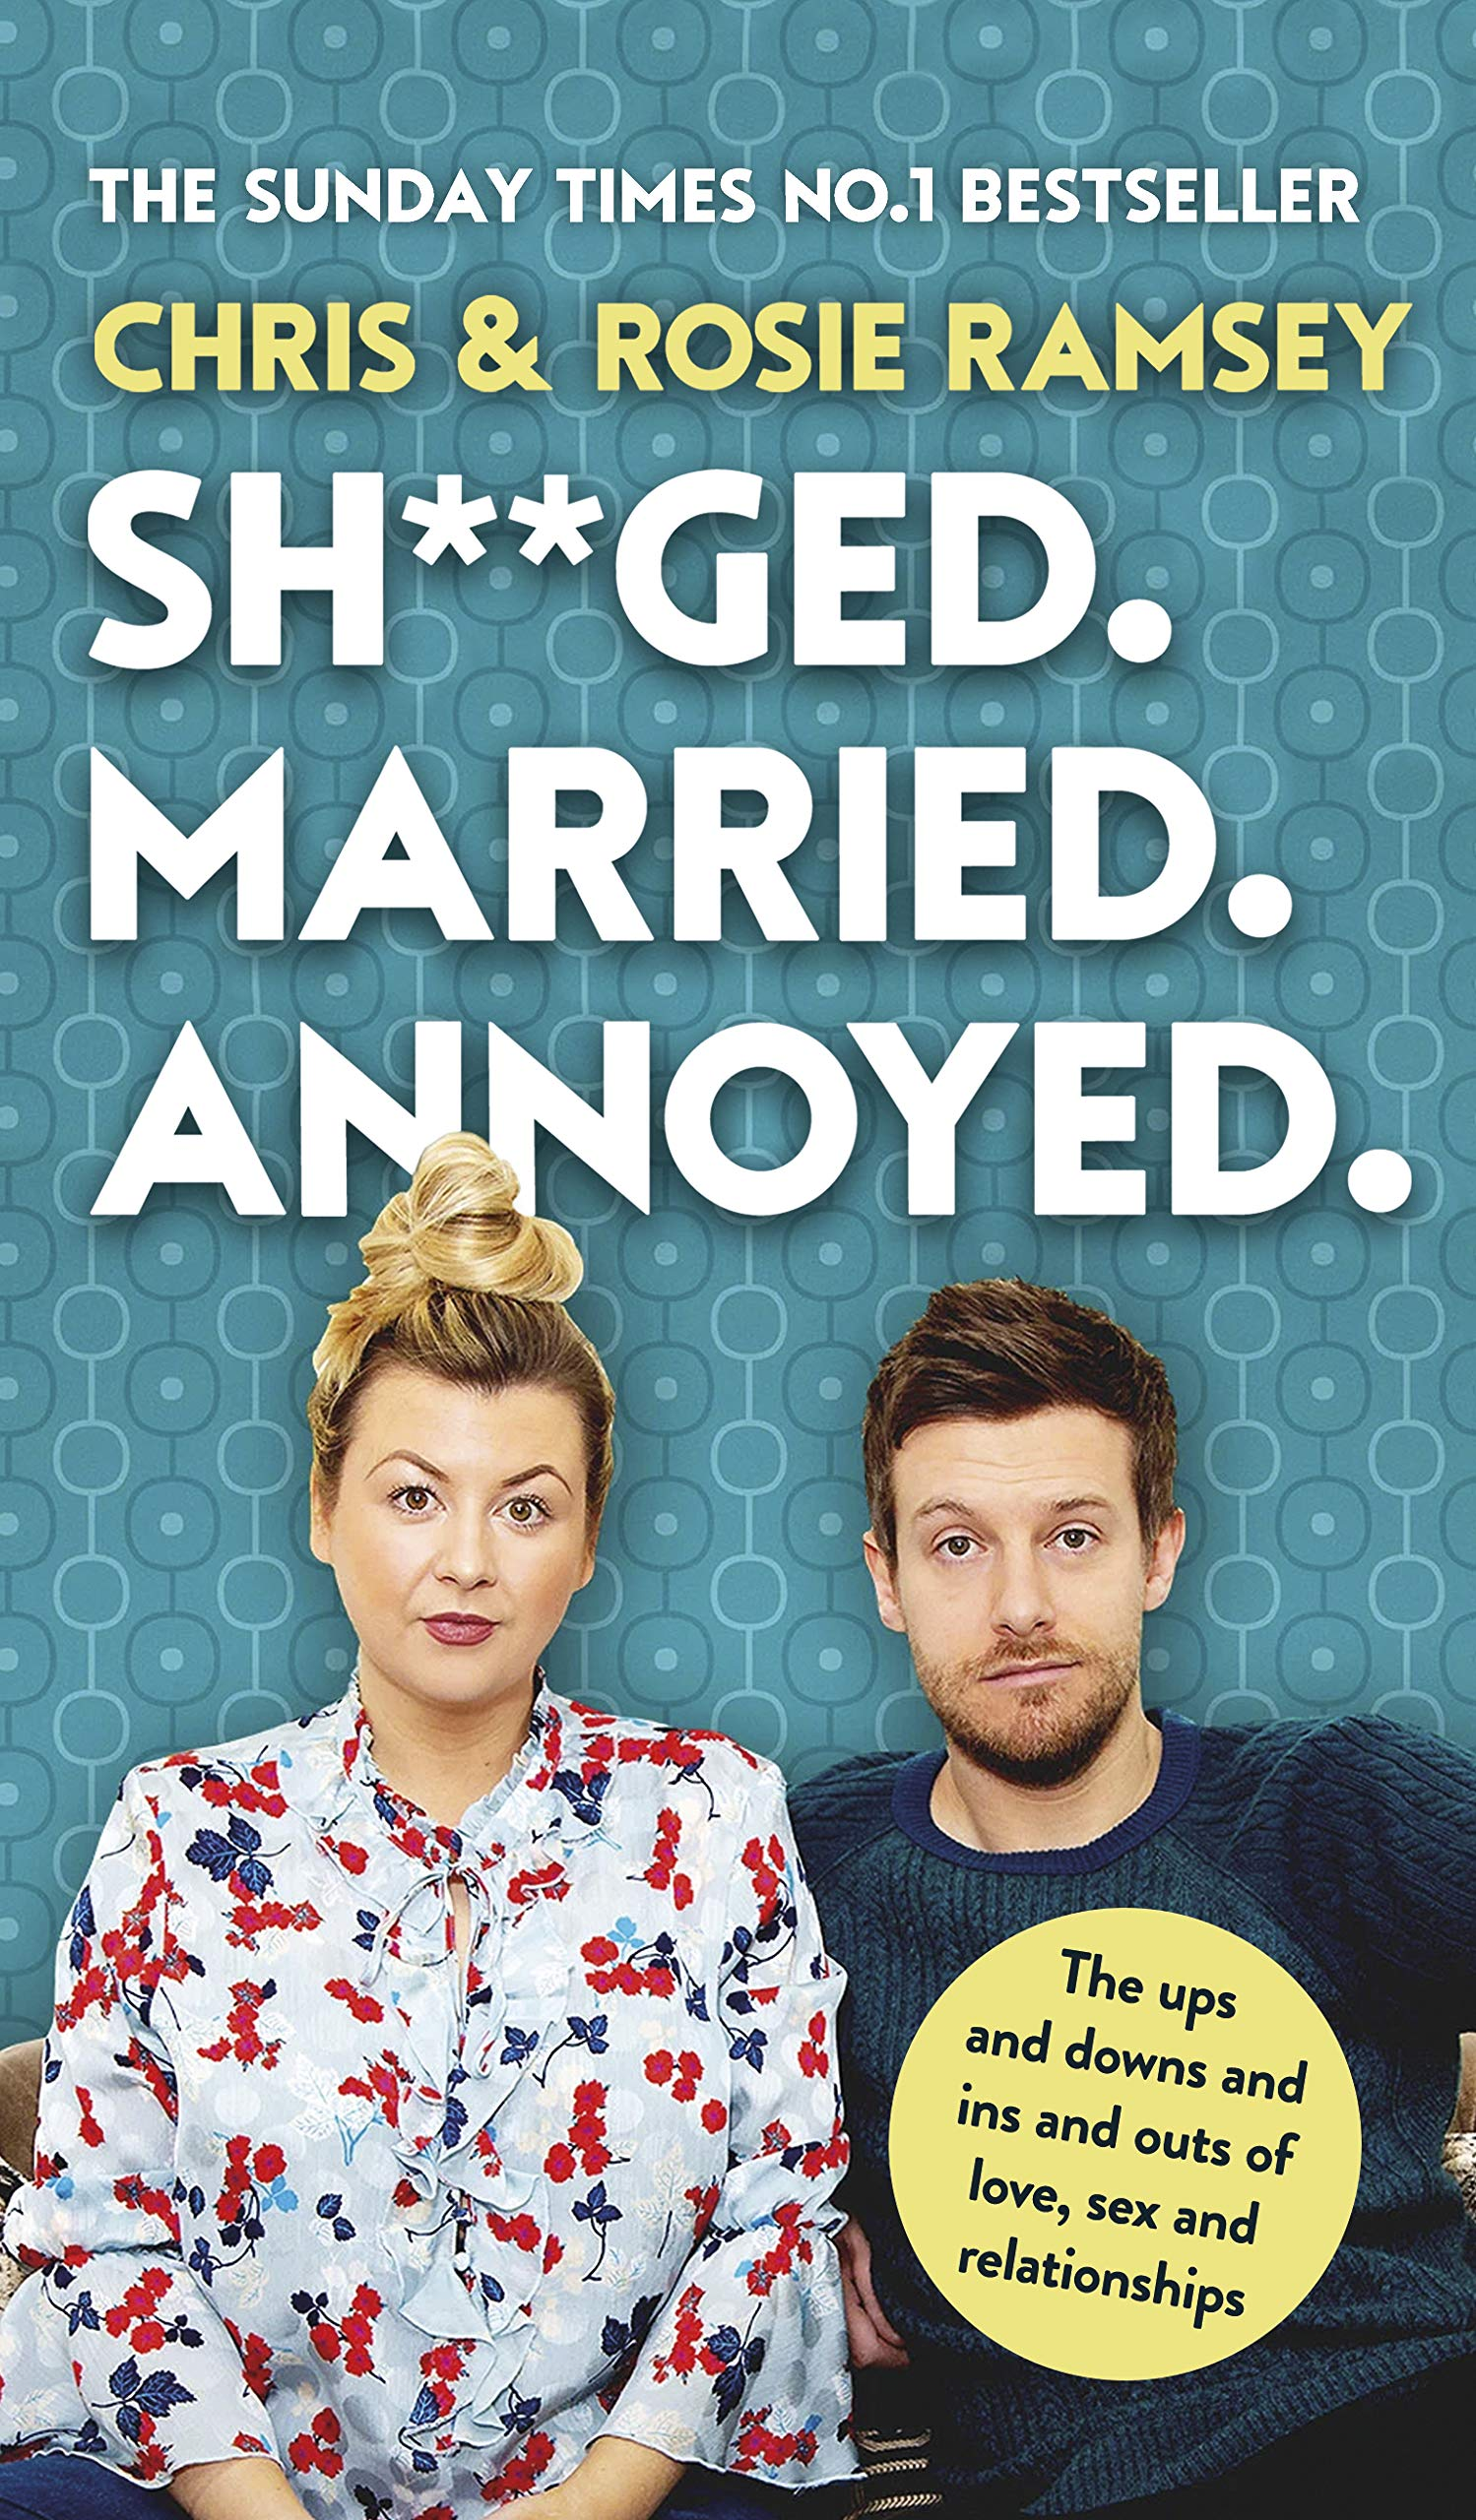 Sh**ged. Married. Annoyed.: The Sunday Times No. 1 Bestseller: Amazon.co.uk: Ramsey, Chris, Ramsey, Rosie: 9780241447123: Books